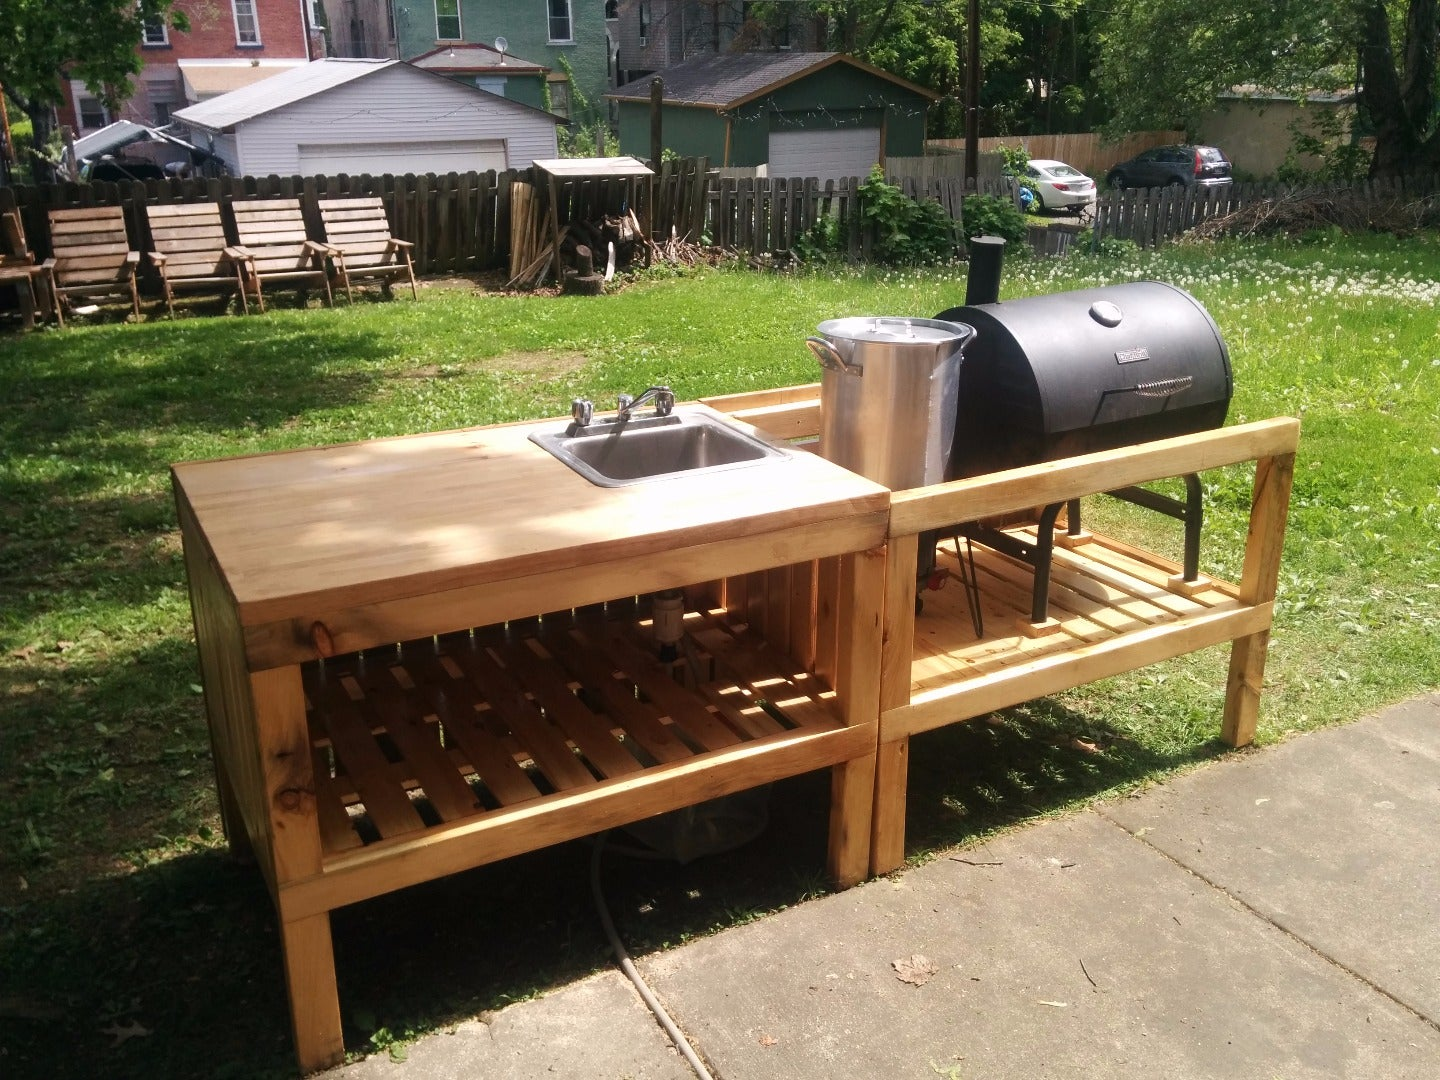 Backyard Kitchen Made From Reclaimed Materials 18 Steps With Pictures Instructables